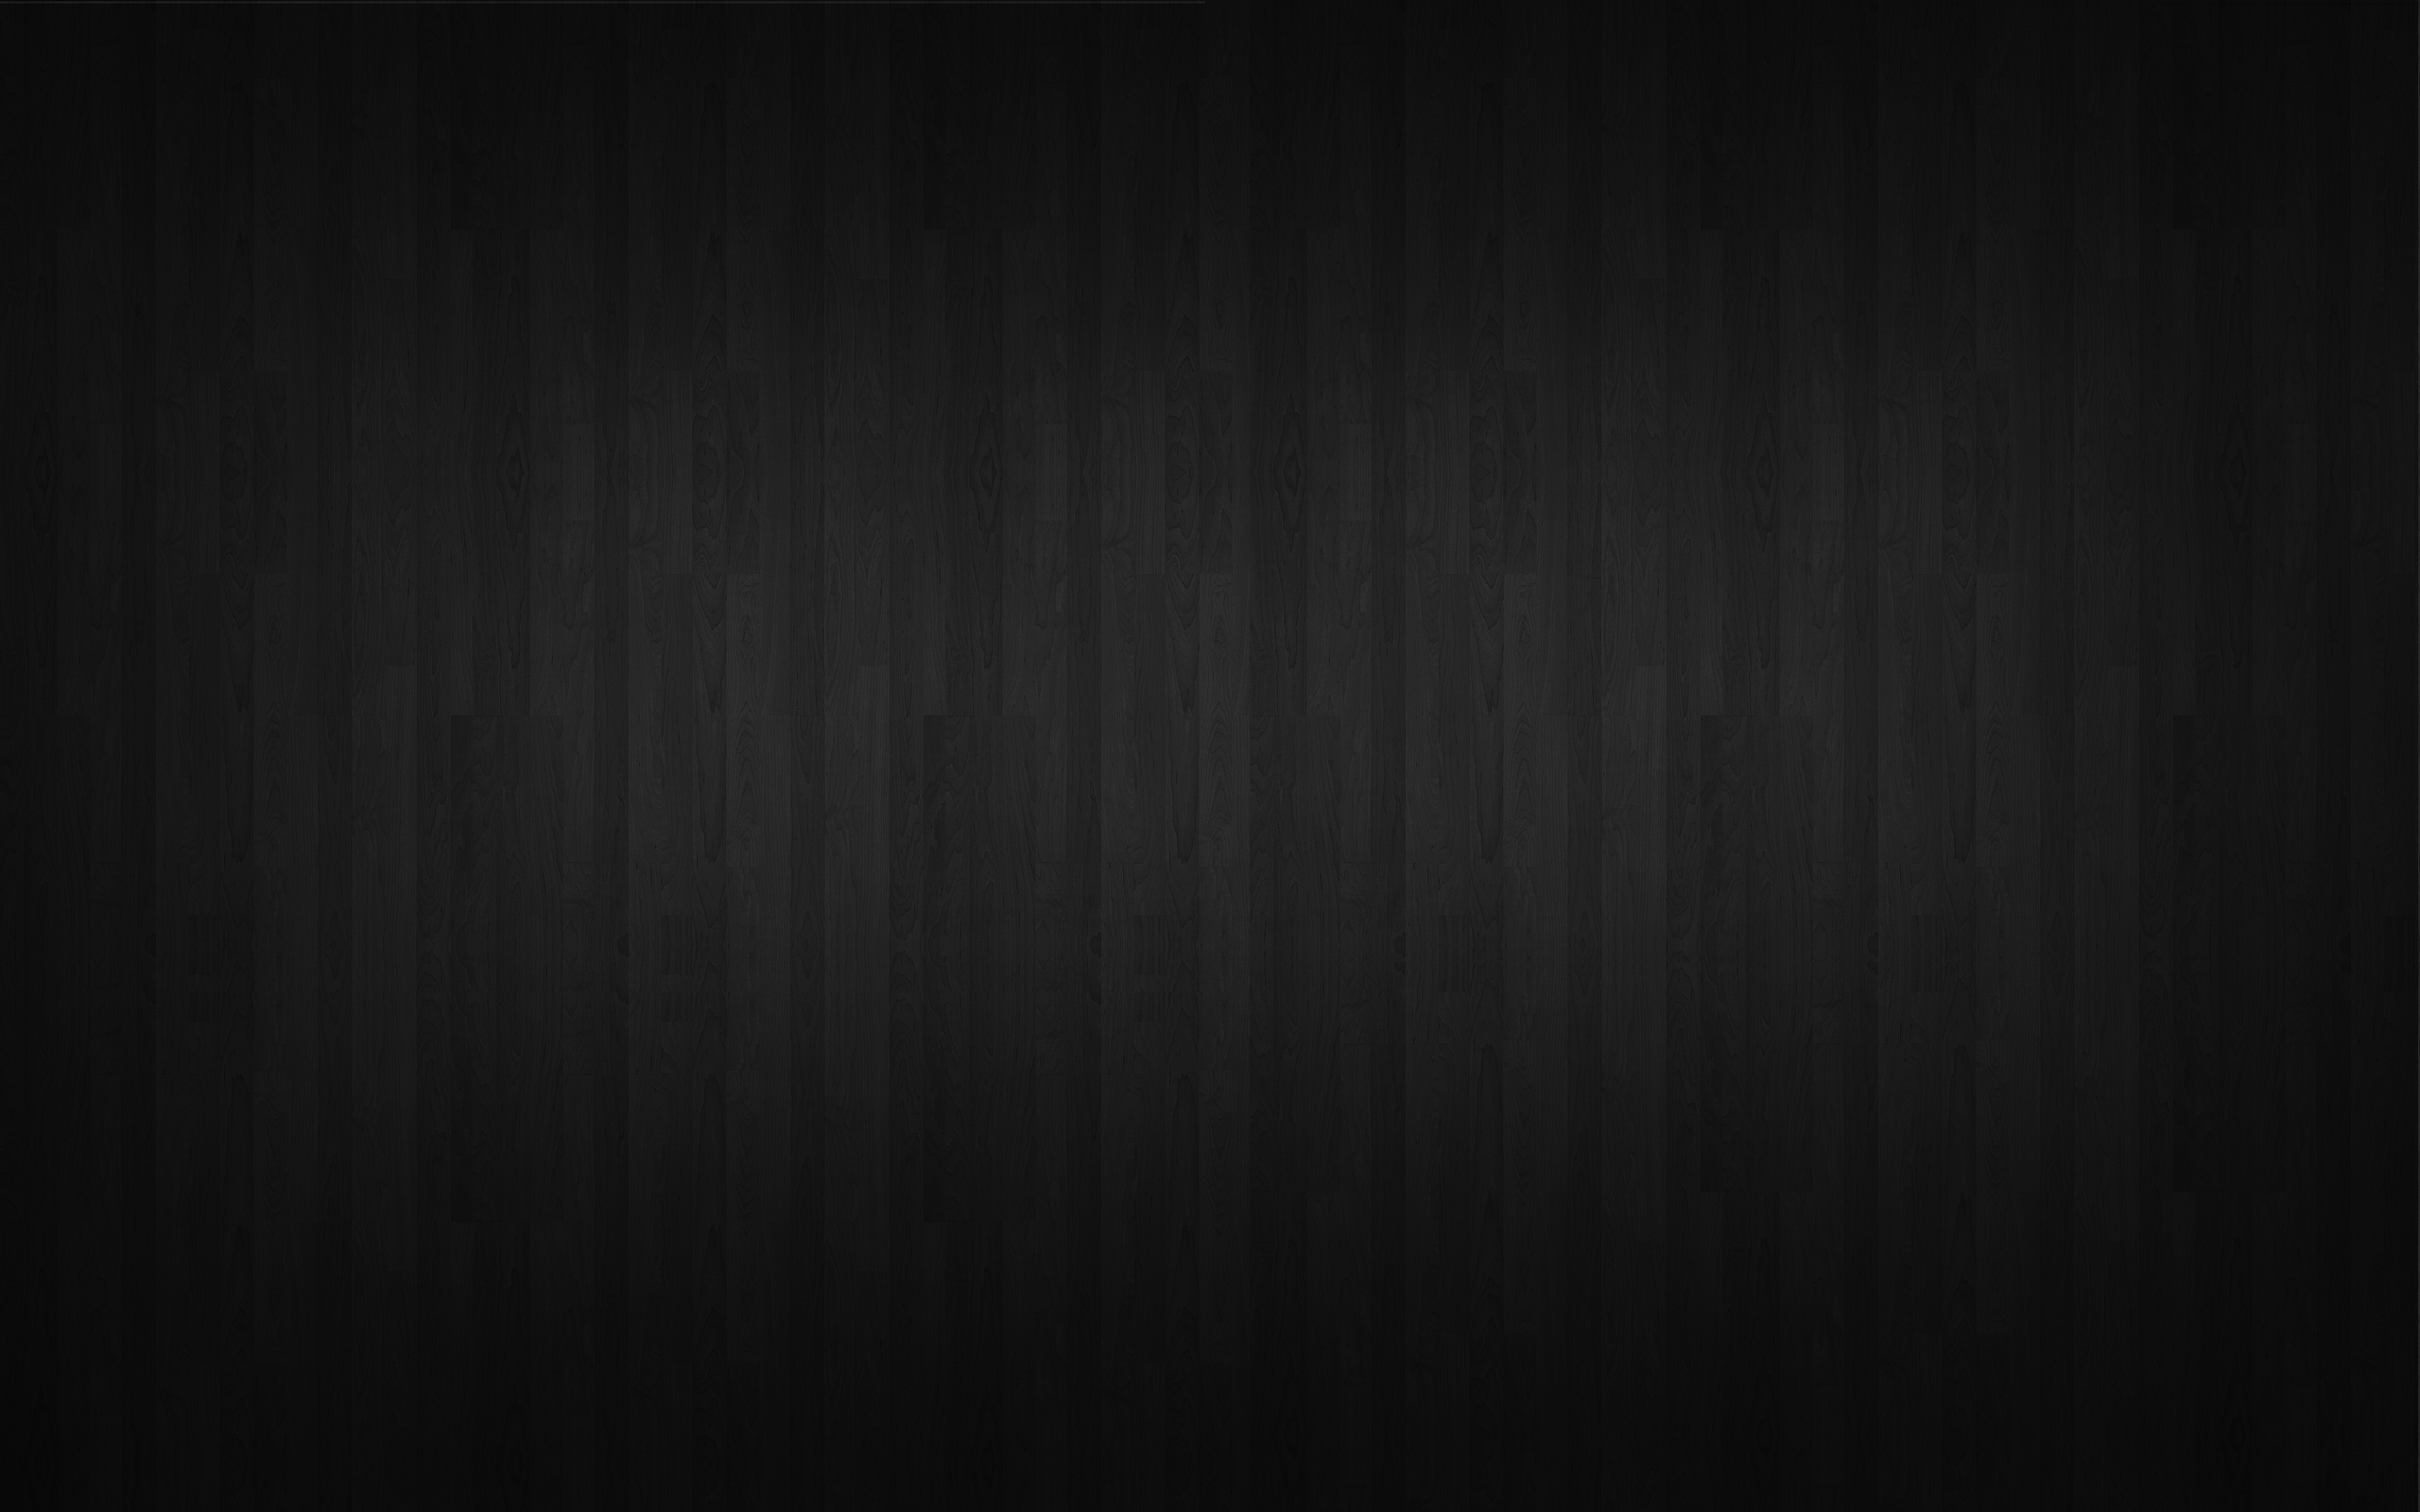 Balck Wallpaper